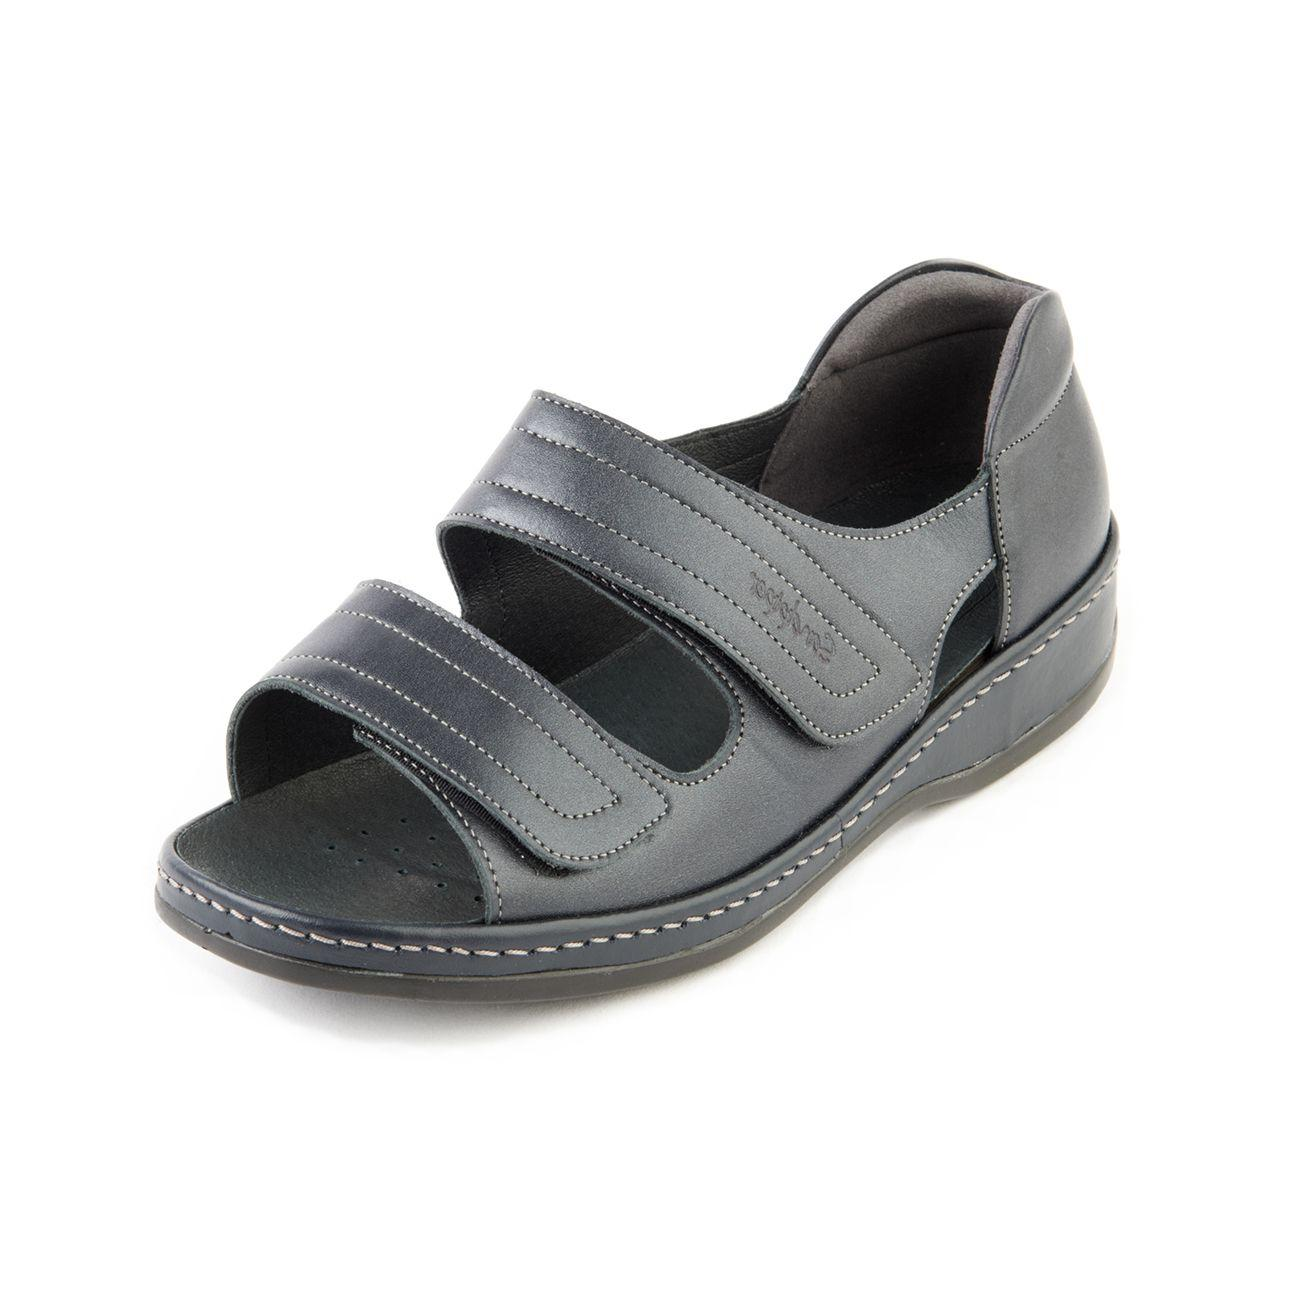 ultra wide ladies shoes online c81b7 98a70